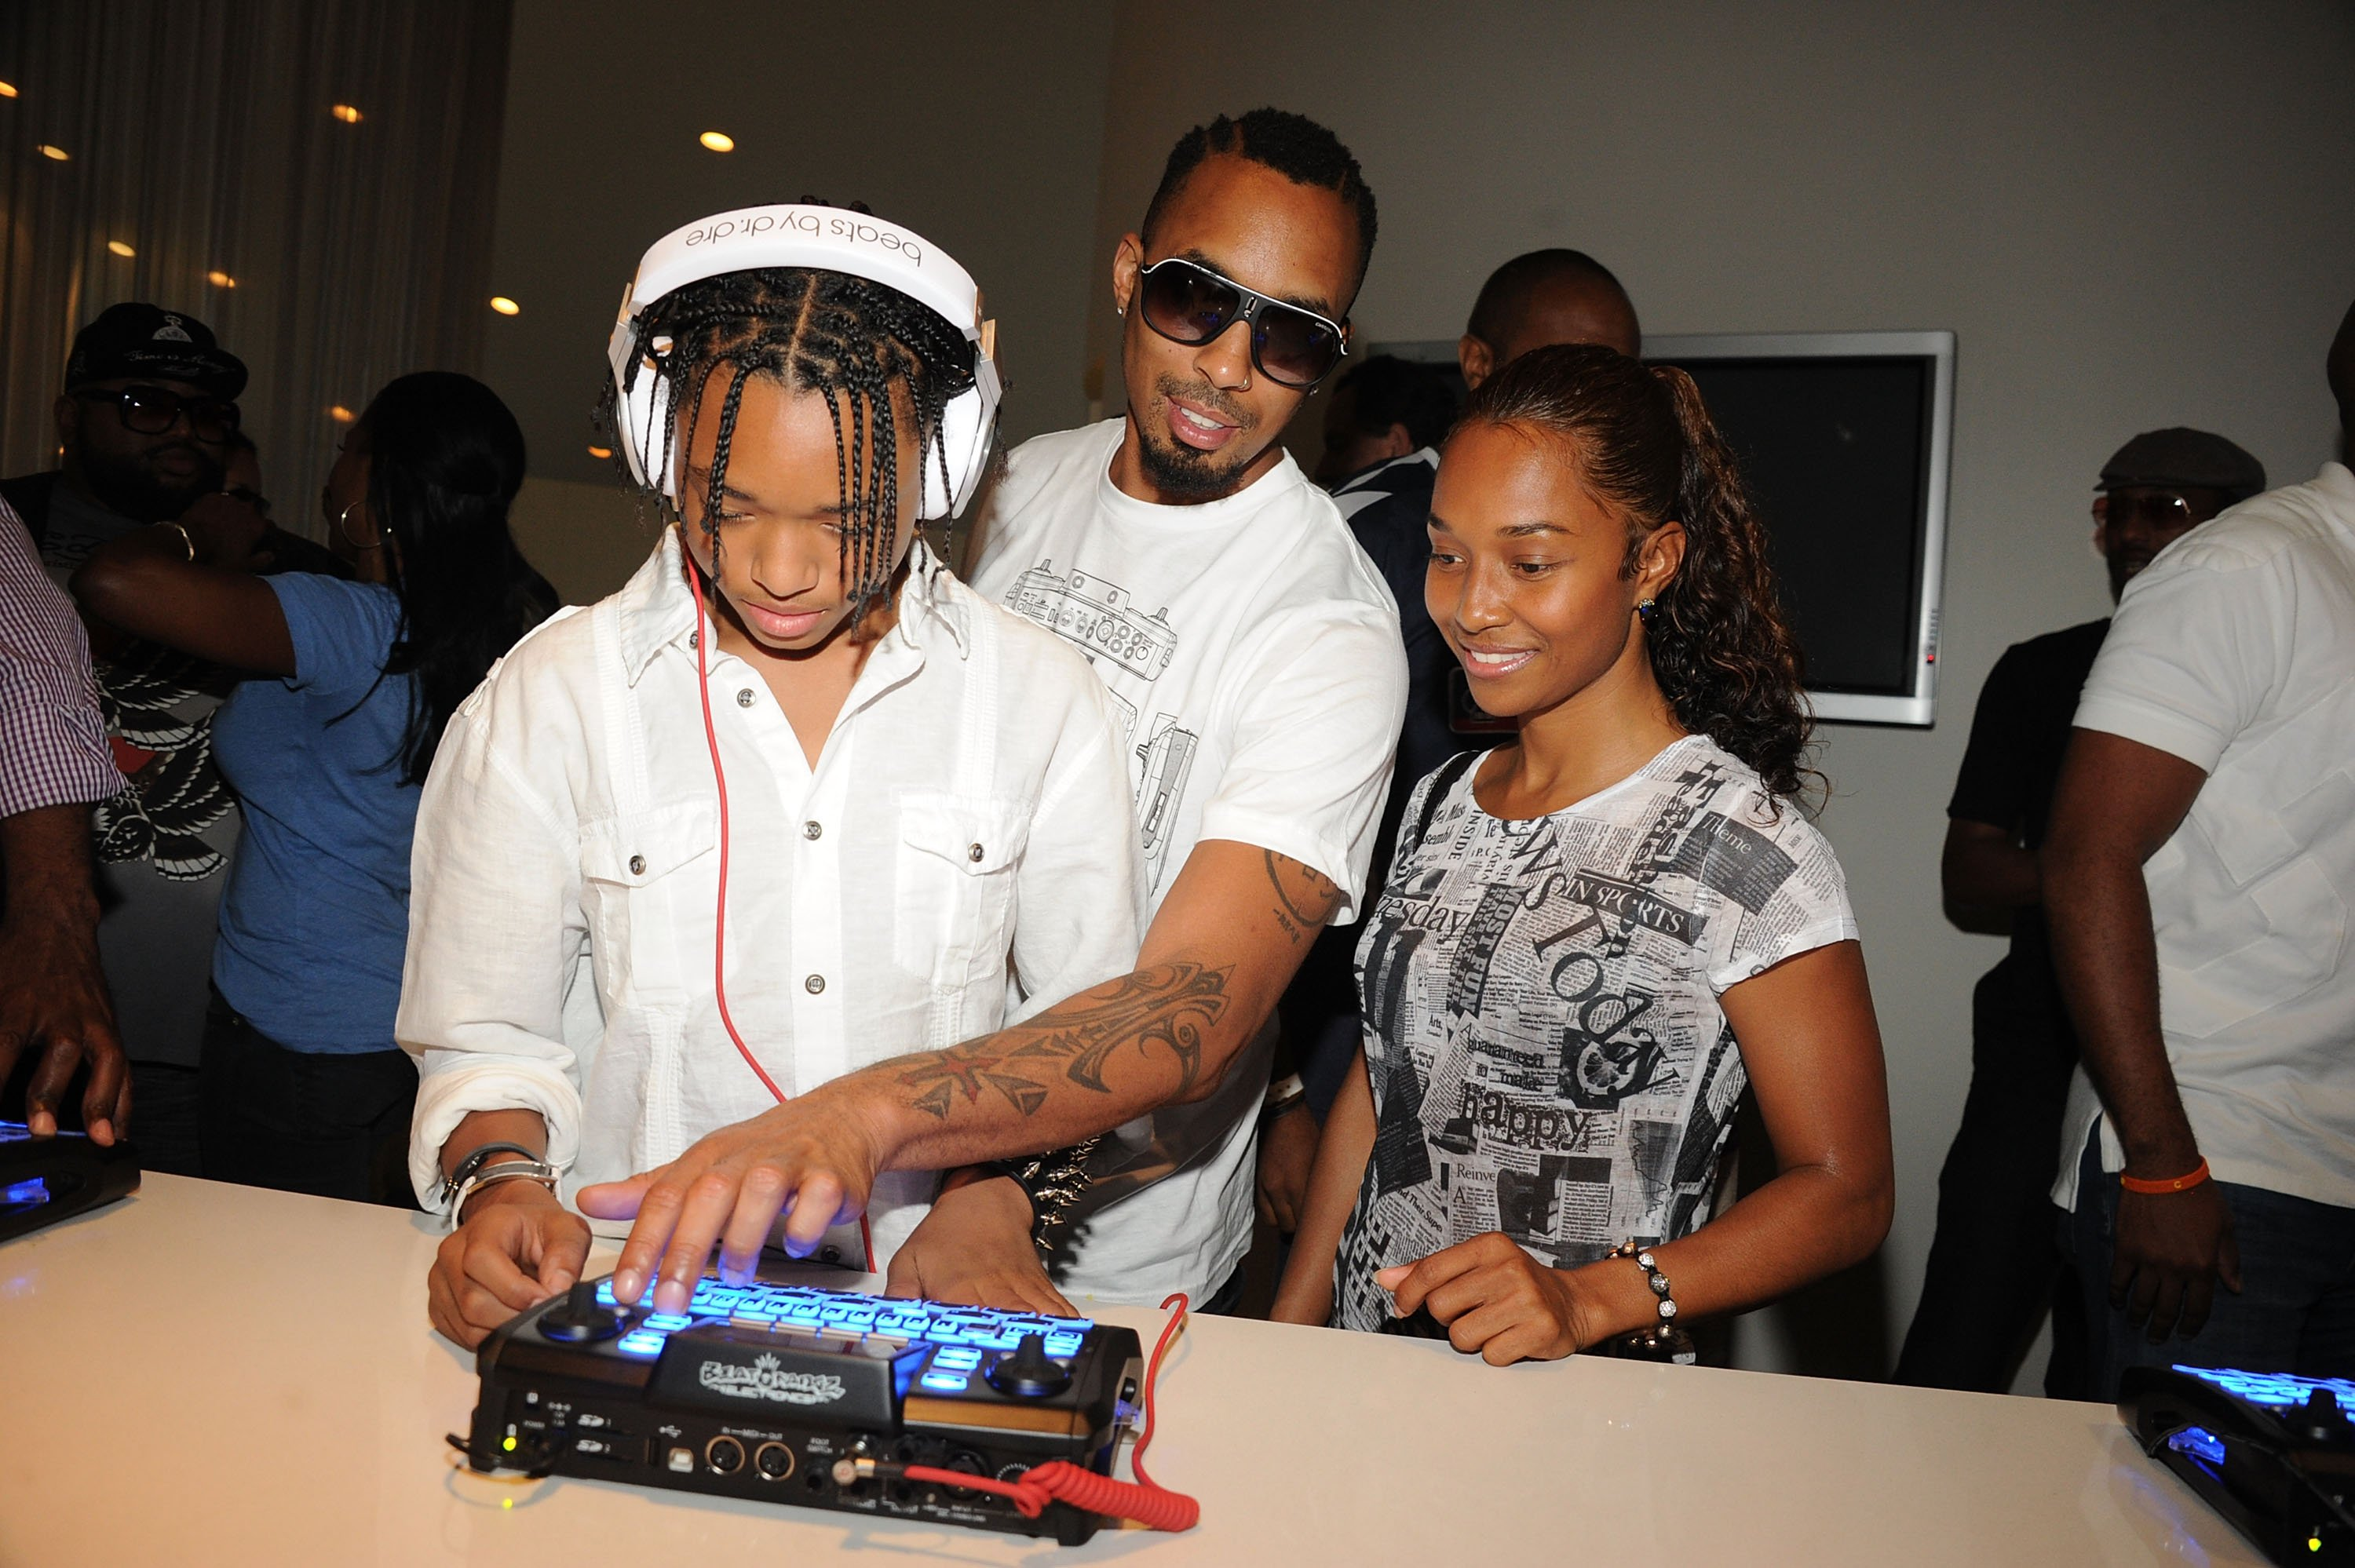 Tron Austin, Producer Dallas Austin and TLC's Chilli during Unbeatable - Beatthang by Dallas Austin Launch Event at Private Residence on May 27, 2011 in Atlanta, Georgia | Photo: GettyImages